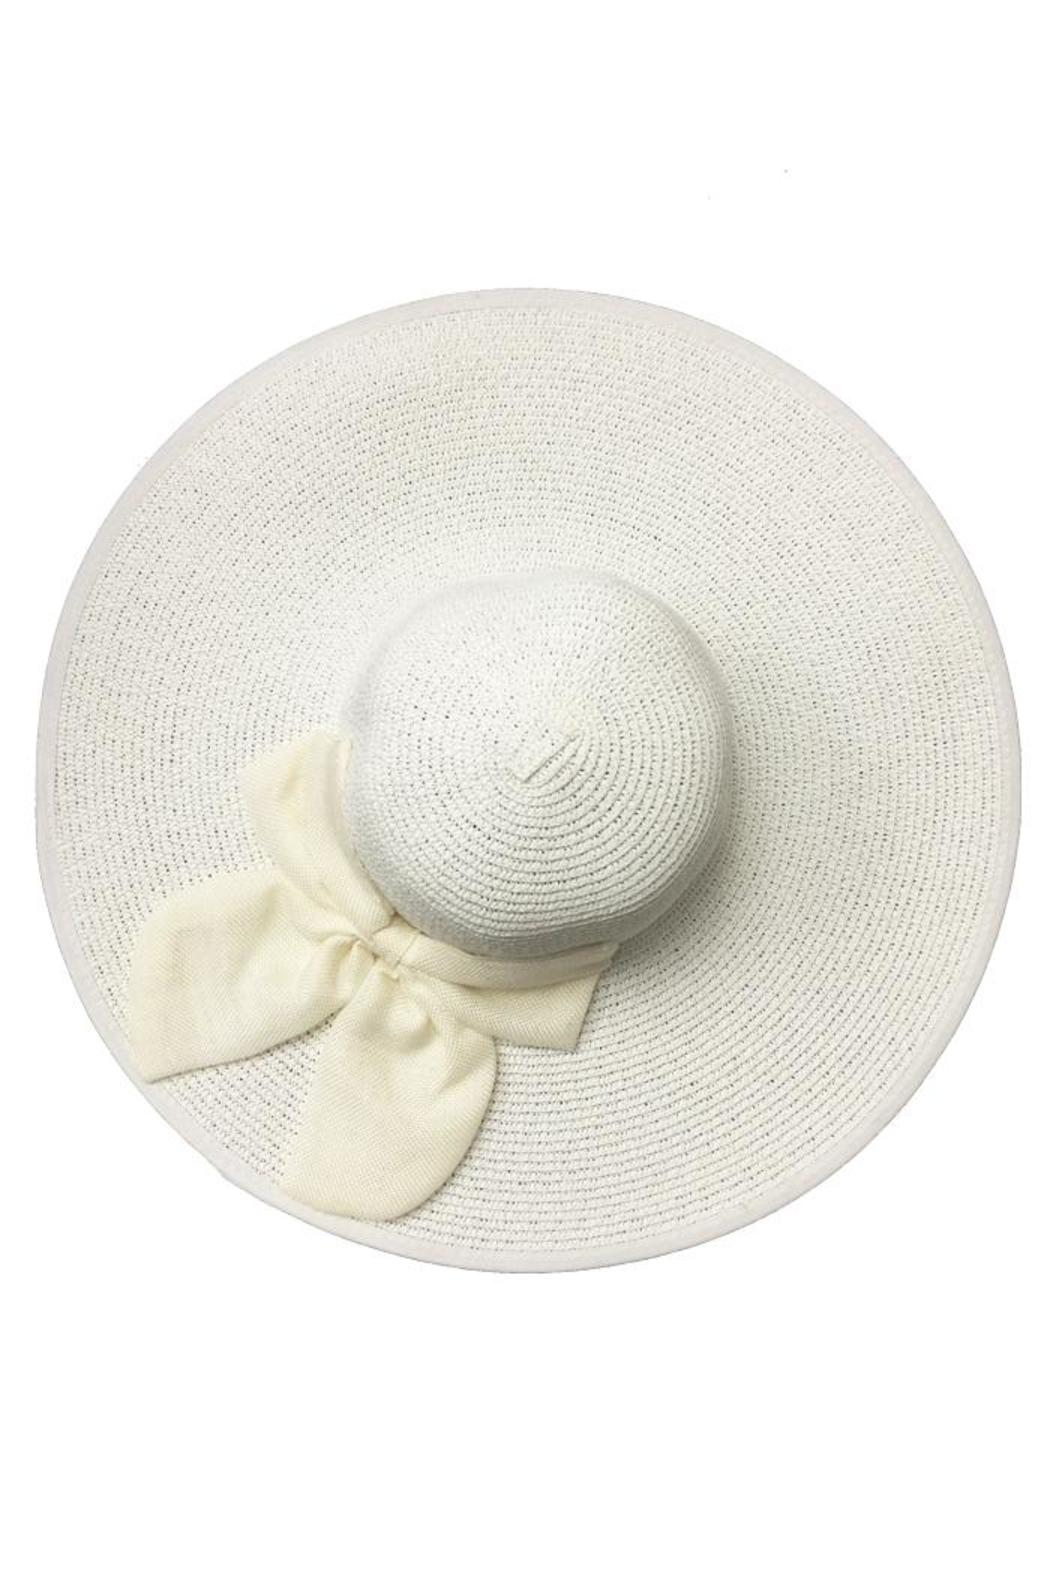 tu-anh boutique White Bow Sunhat - Front Full Image